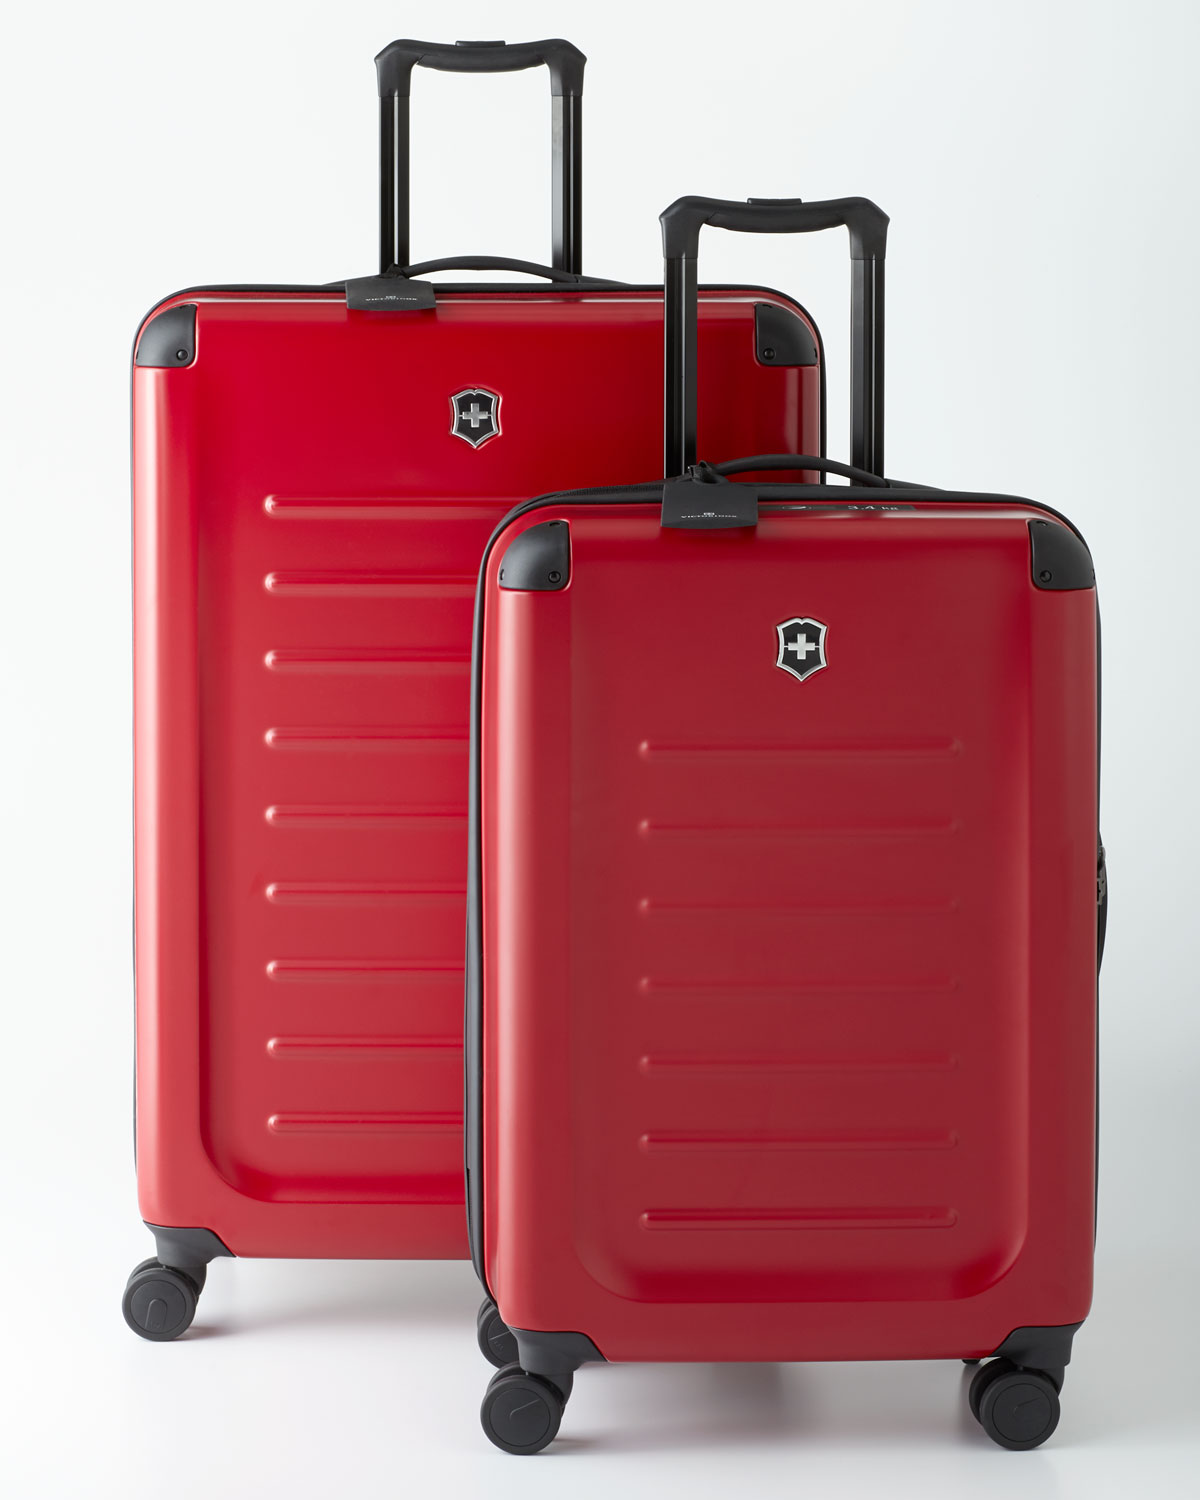 Spectra 26 Spinner Luggage